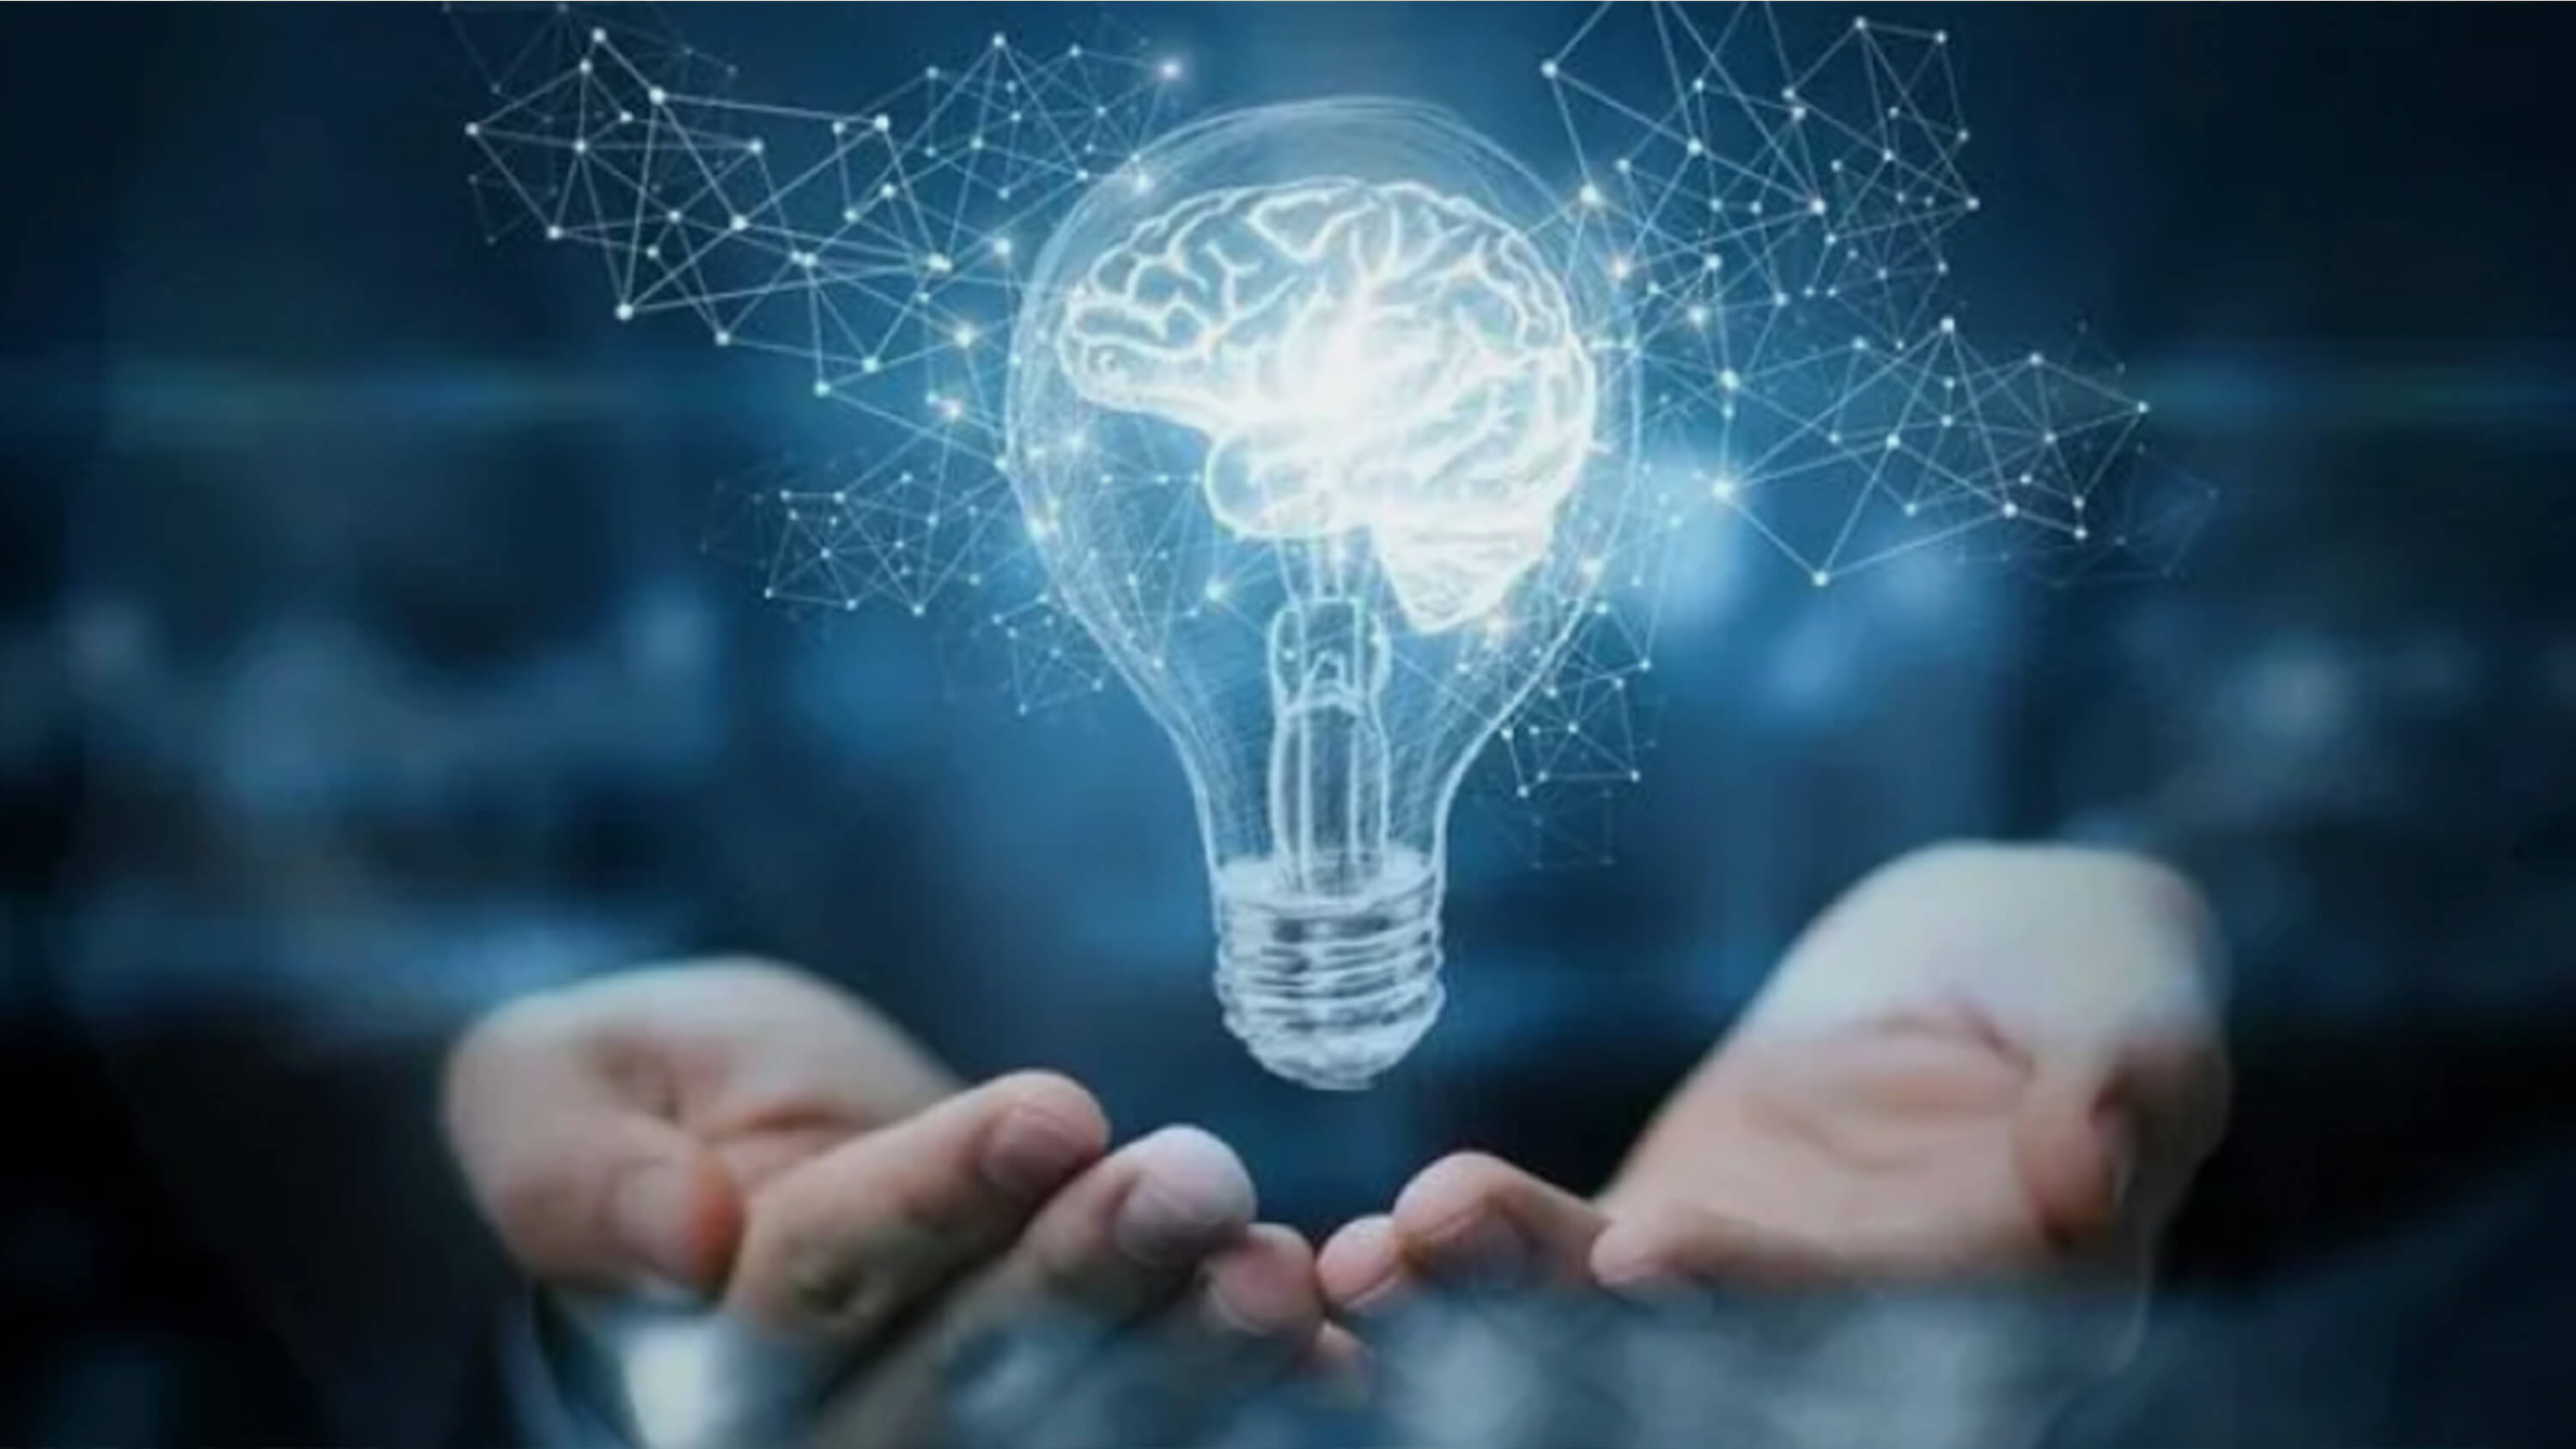 NERA POWERS ENERGY INNOVATORS AND RAPID TECH SOLUTIONS TO COMBAT COVID-19